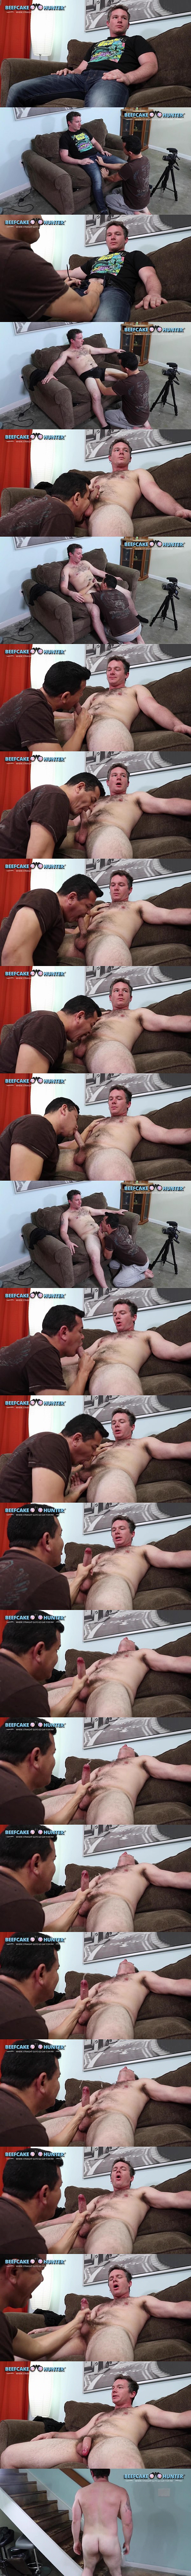 Beefcakehunter - Victor deep-throats straight uber driver Craig's dick and licks his big balls before he strokes a big creamy load out of Craig's hard pole 02